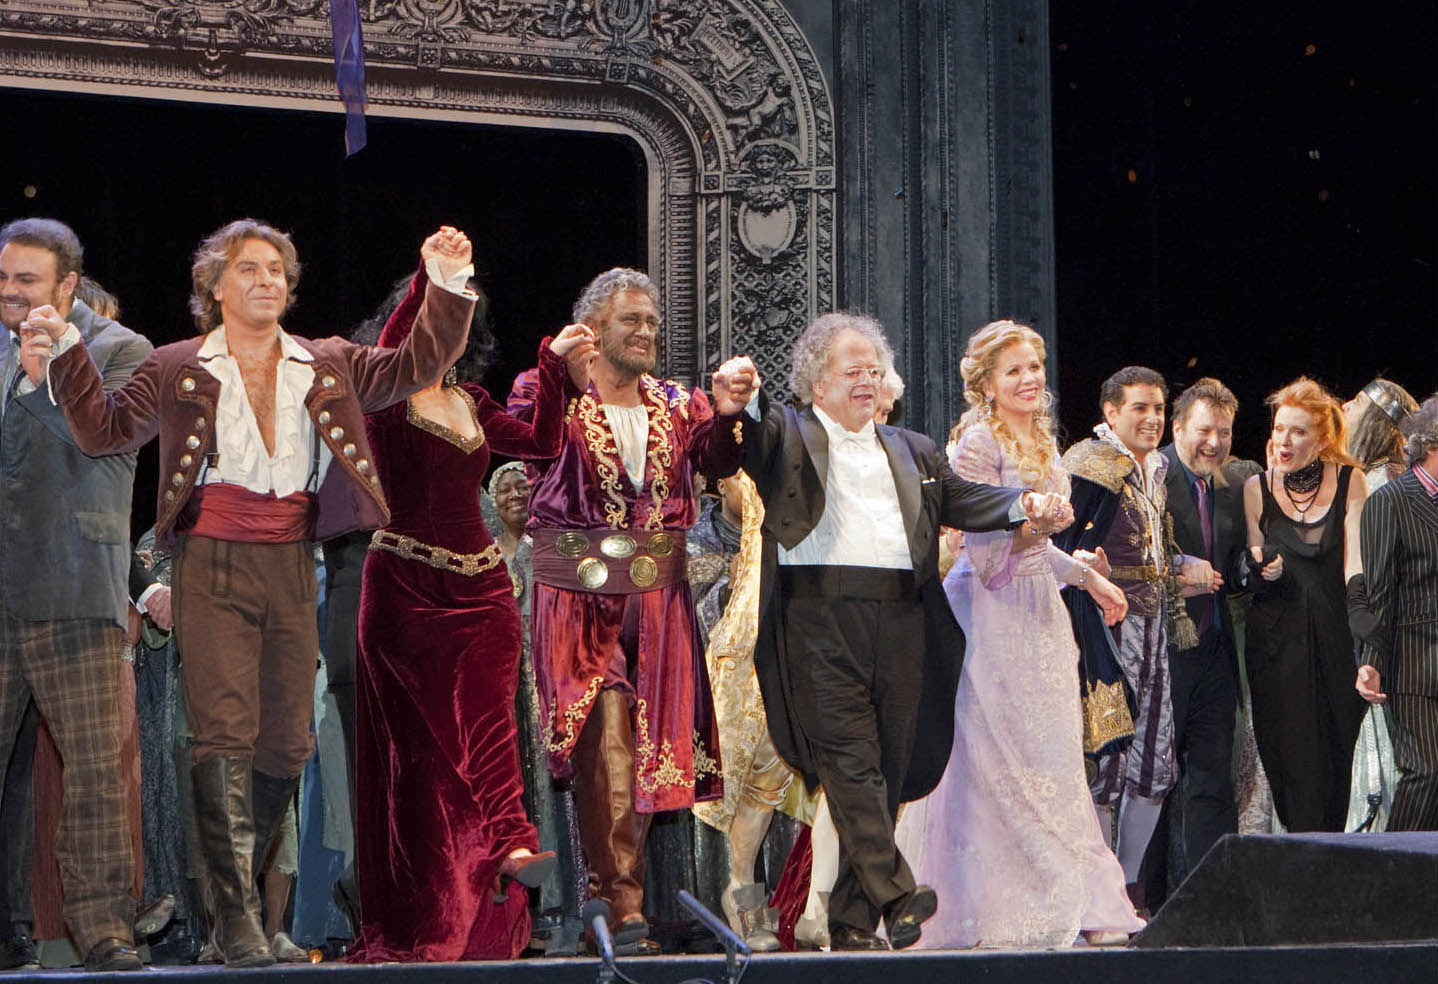 (from L to R) Roberto Alagna, Angela Gheorghiu (hidden), Placido Domingo, James Levine, Renee Fleming, Juan Diego Florez, Julian Crouch, and Catherine Zuber during the final bows following the Metropolitan Opera's 125th Anniversary Gala on March 15, 2009. Photo: Ken Howard/Metropolitan Opera Photo taken on March 15, 2009 at the Metropolitan Opera House in New York City.